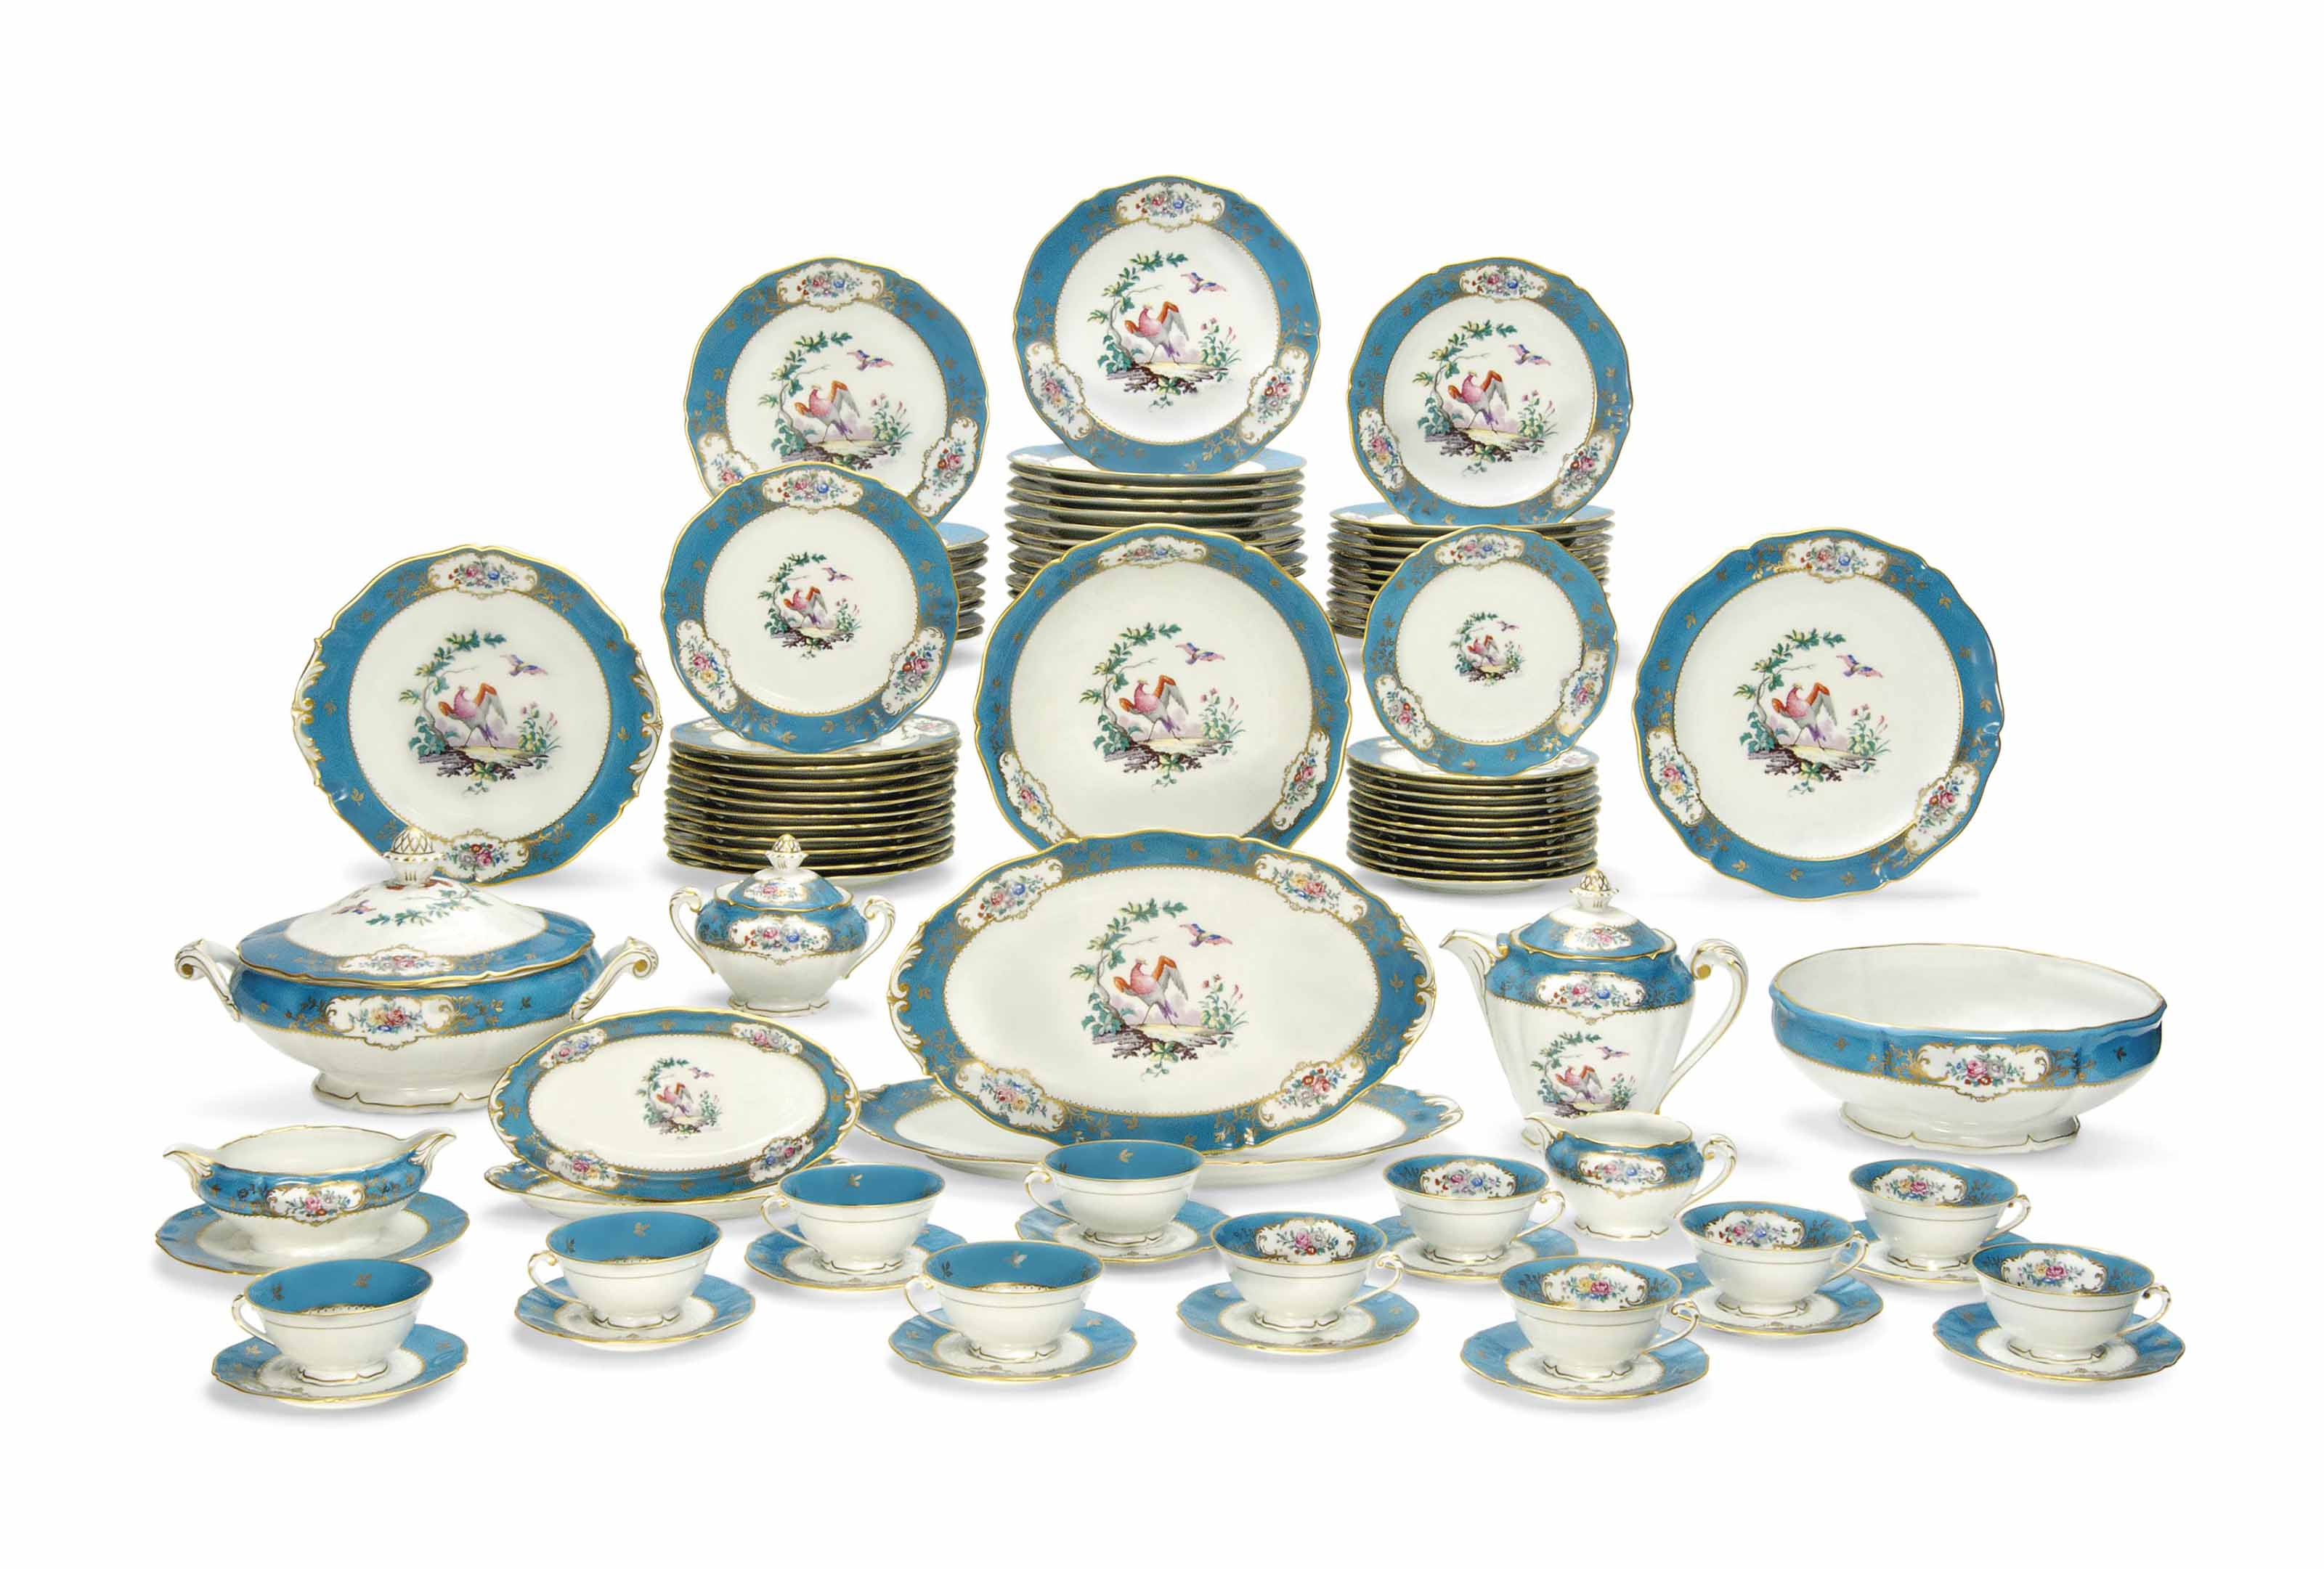 A LIMOGES SEVRES-STYLE TURQUOISE-GROUND PART DINNER-SERVICE